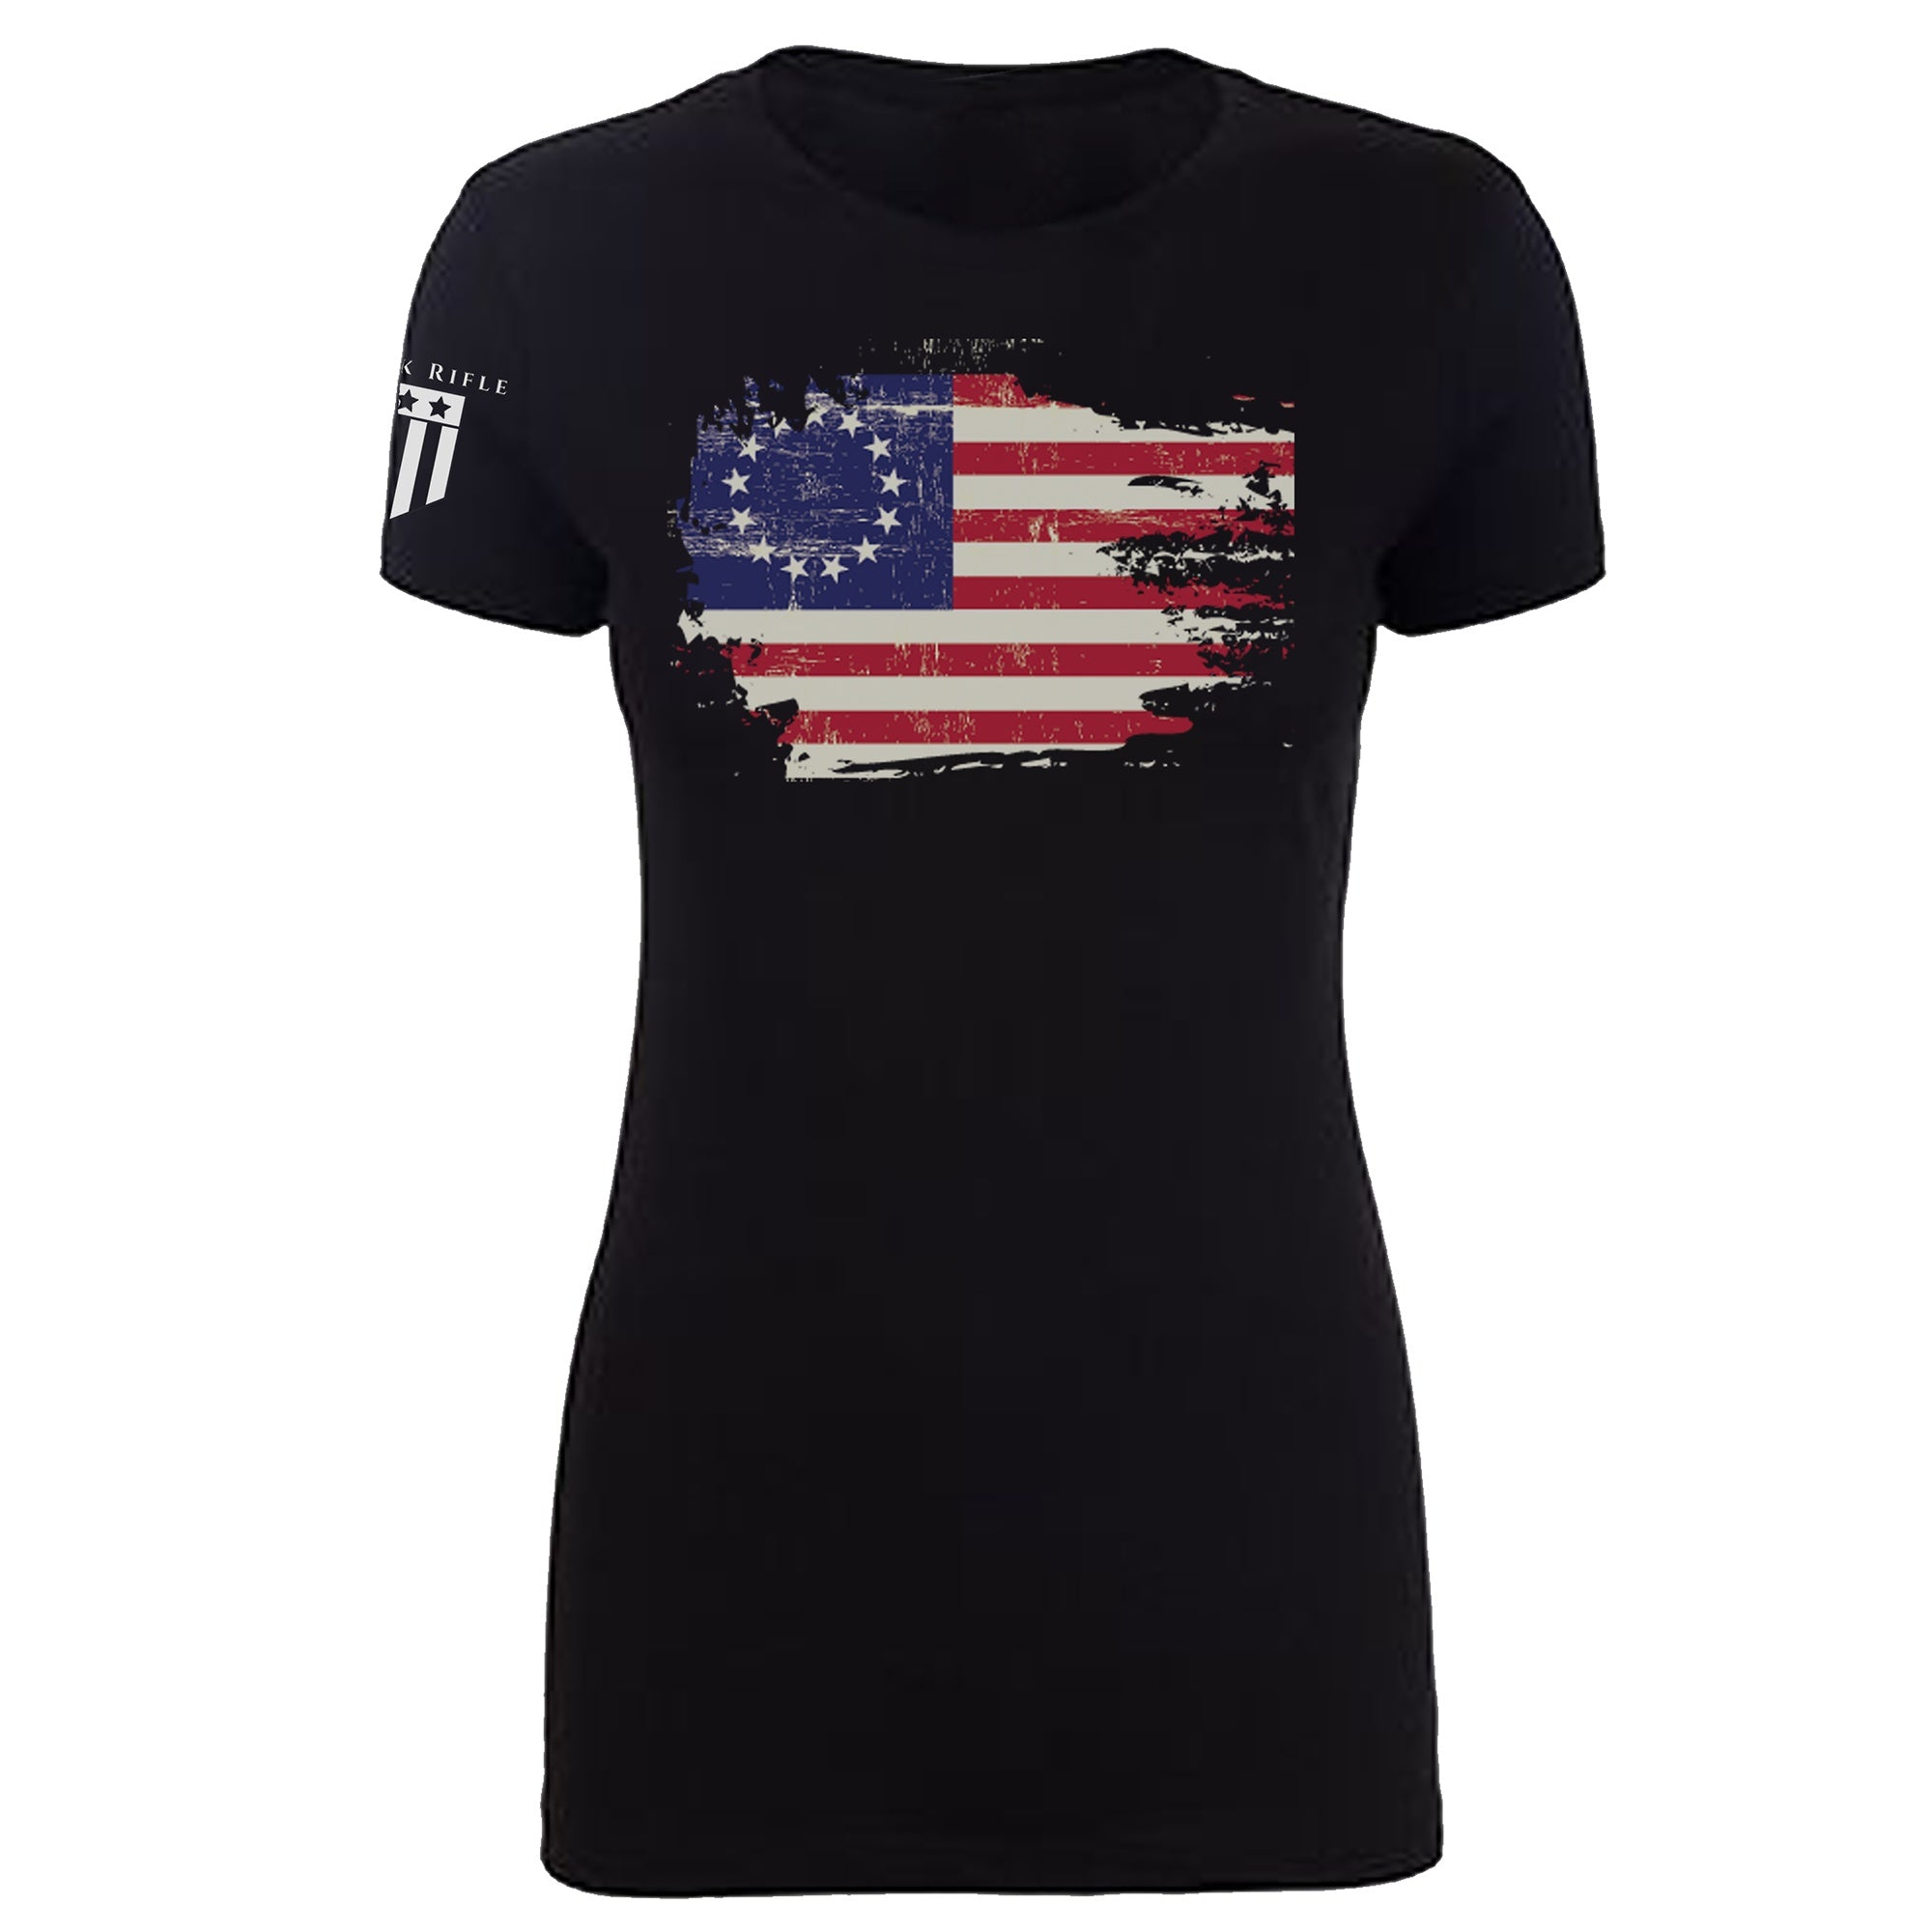 Original Colonies Flag Women - Rock Rifle Trading Co. Patriotic, Veteran Clothing and Apparel